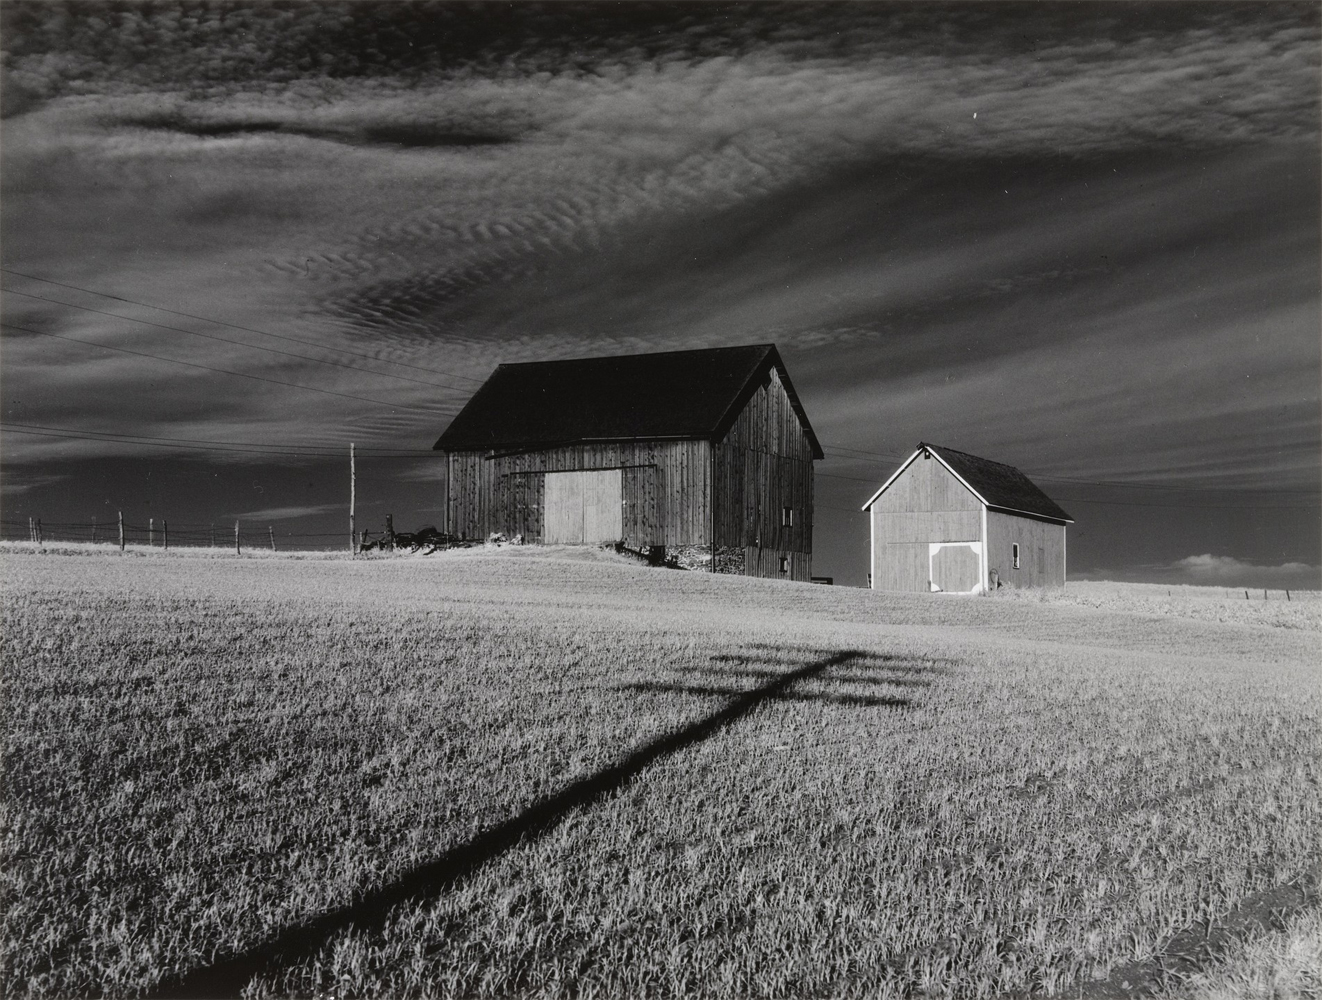 Minor White, from Jupiter portfolio - Two Barns, Danville, NY, 1955, portfolio contains 12 gelatin silver prints, 9 x 12 inches, edition of 100, price on request